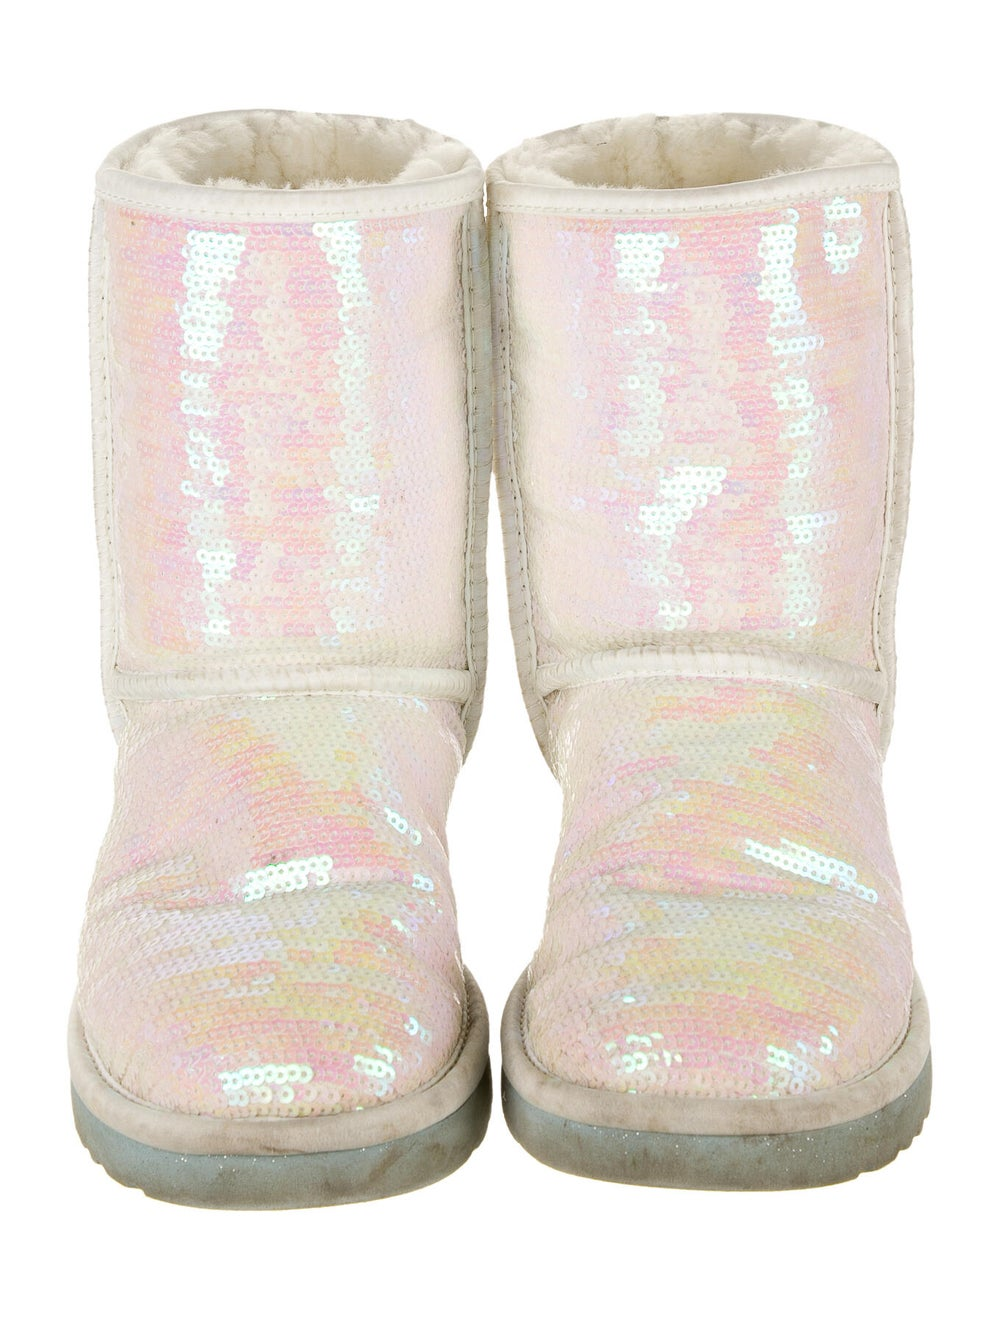 UGG Boots Pink - image 3